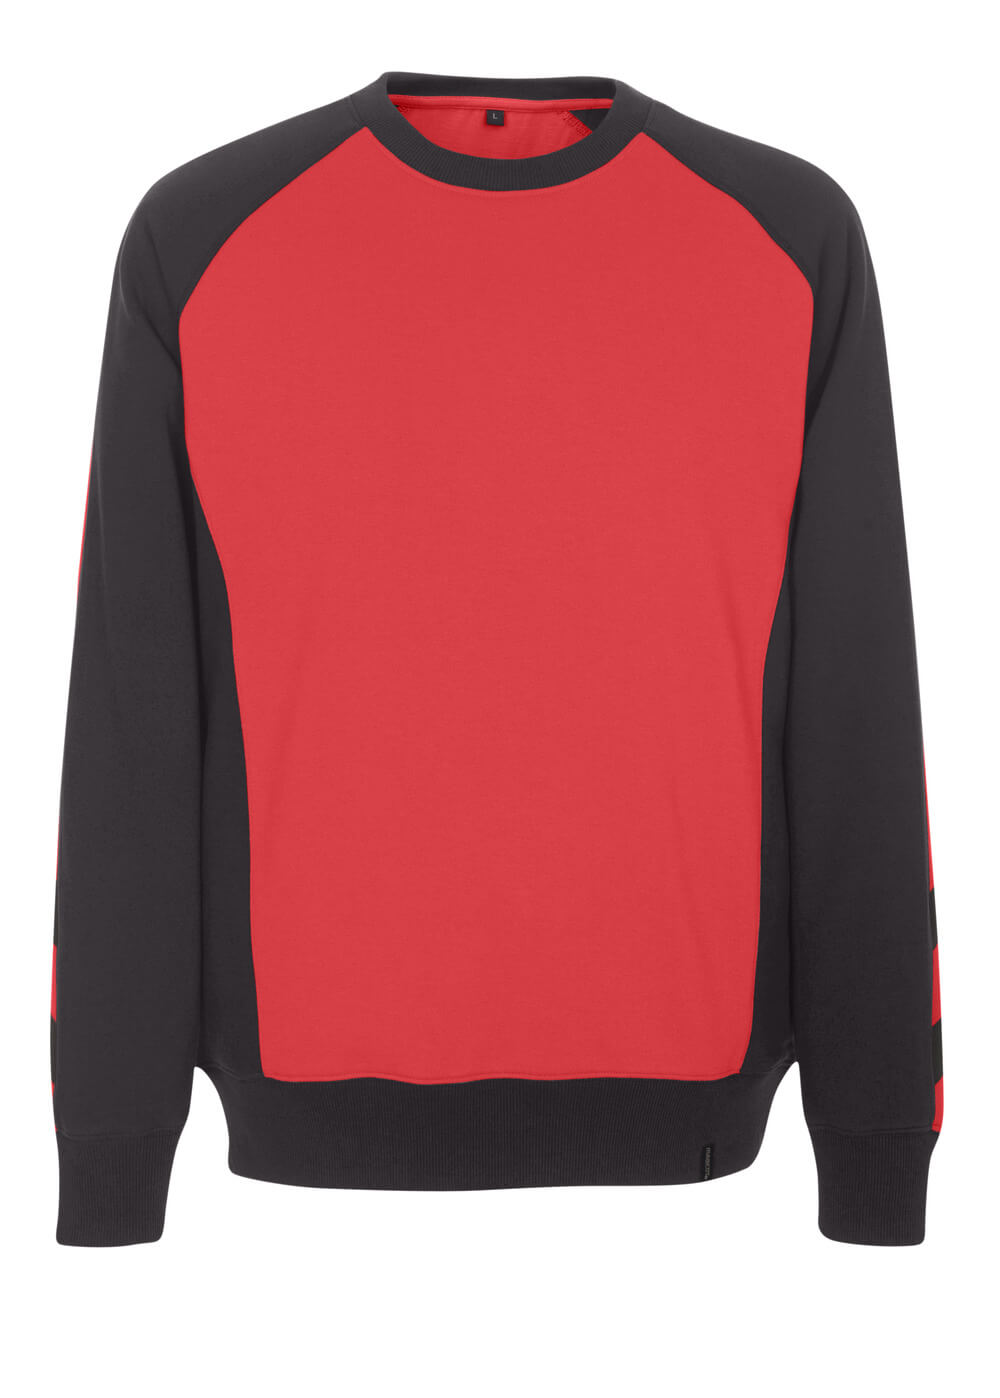 50570-962-0209 Sweatshirt - rød/sort